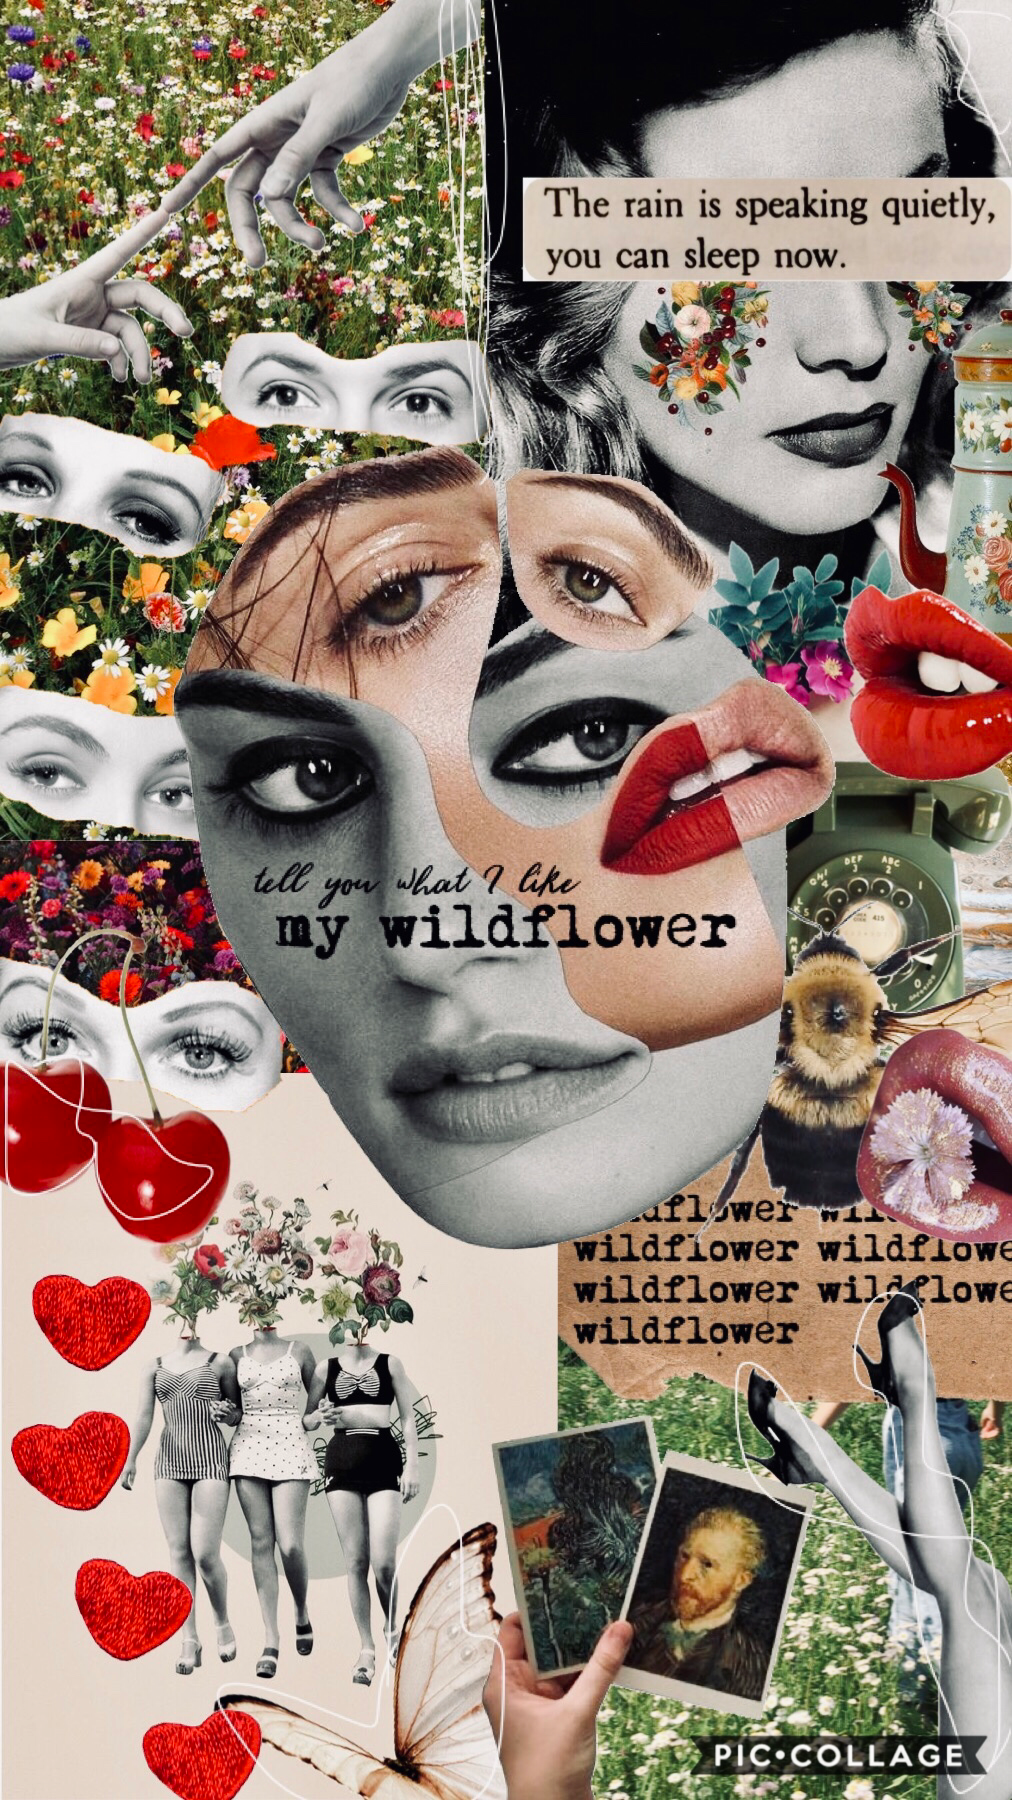 my favorite fantasy (tap)  here's to hoping this does well 😎👊 I've been experimenting with my style so lmk what you think of this! (the song is wildflower by 5sos)